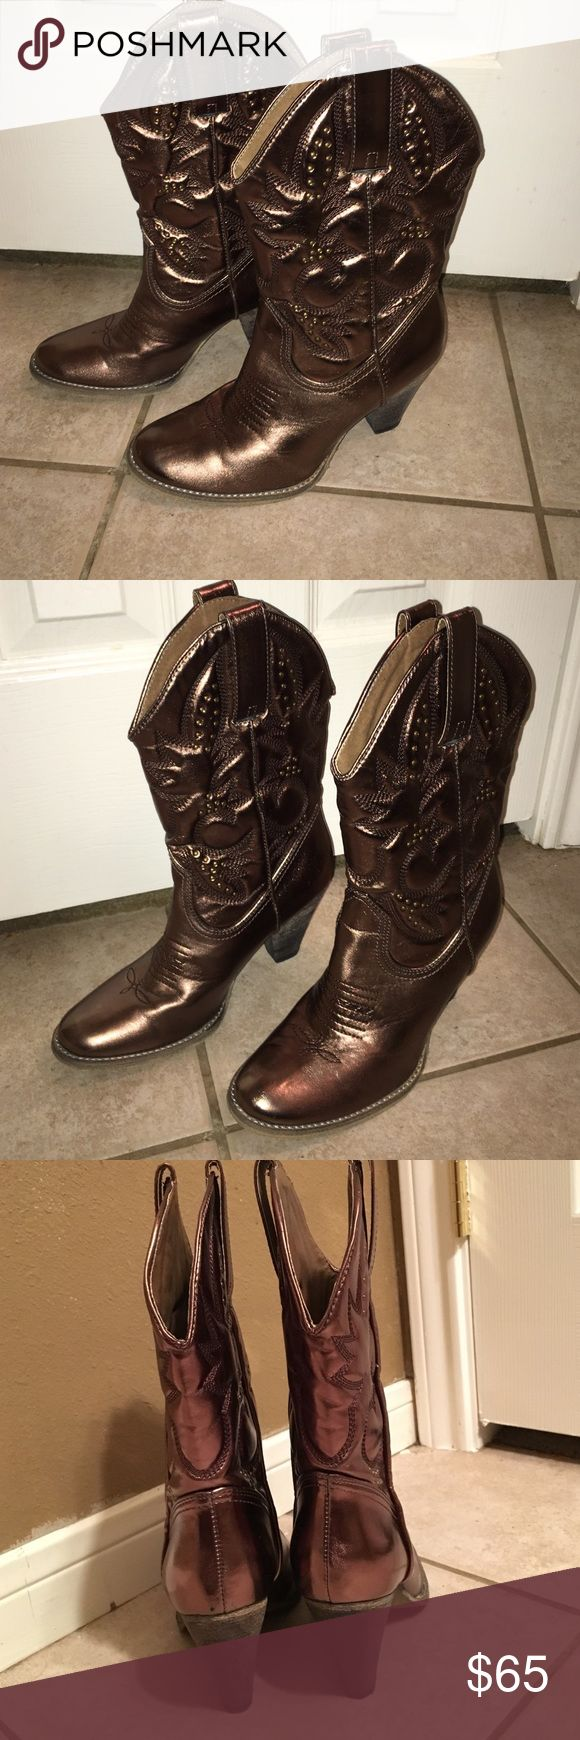 Gold women's western boots Women's gold western boots. Almost a bronze color. They look very nice with a pair of jeans, cutoff shorts, skirt or long dress. Size 8 and go halfway up the calf. Very comfortable to walk in. Only worn once. In perfect condition Shoes Heeled Boots